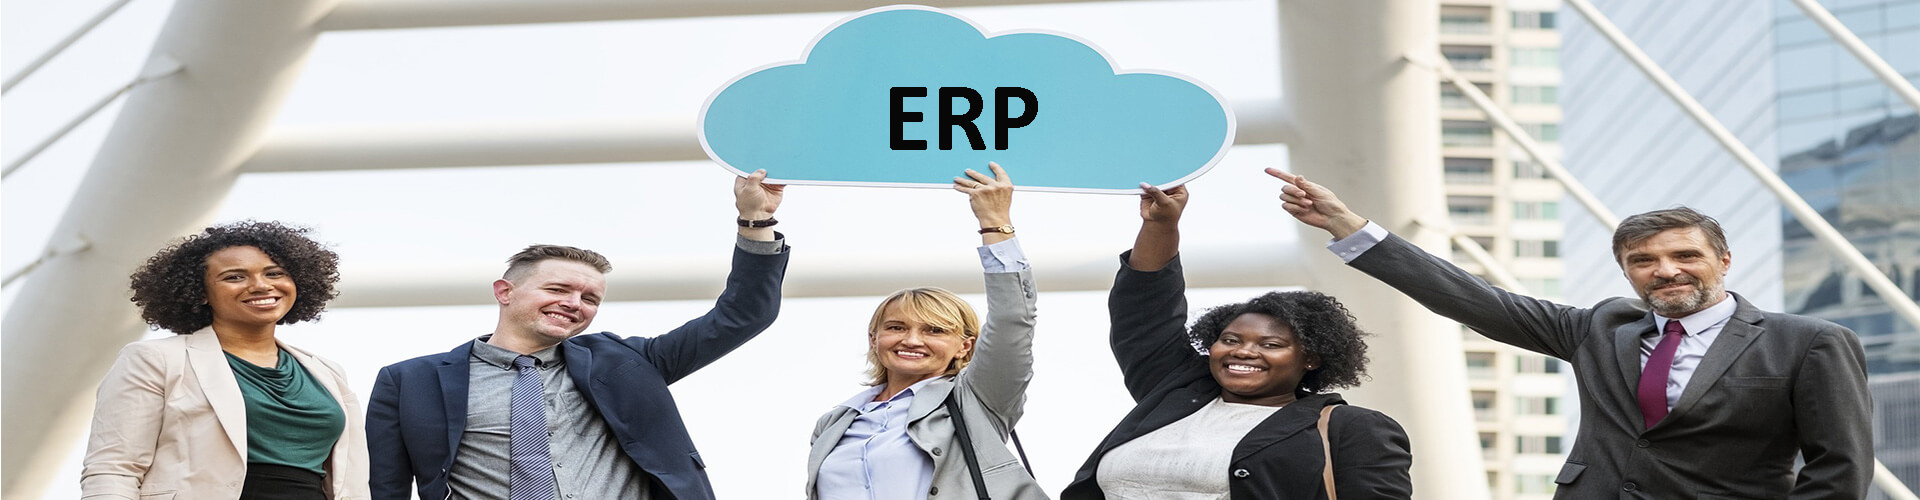 CLOUD BASED ERP SOFTWARE DUBAI